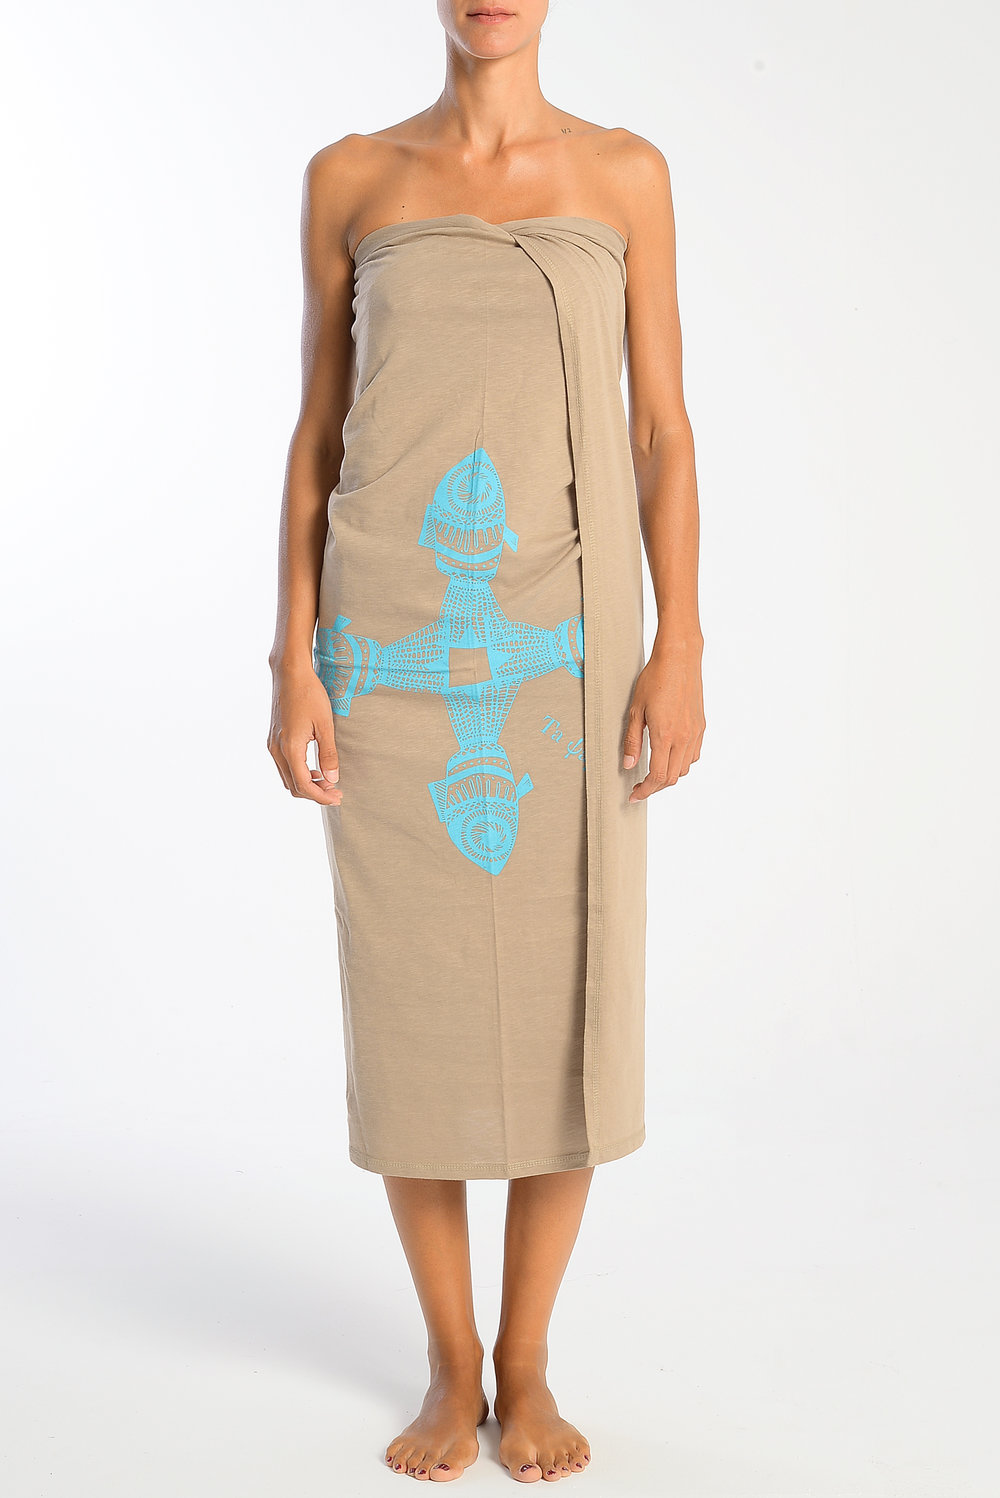 fish-turquoise-print-on-beige-cotton-pareo-wrap-strapless-dress.jpg